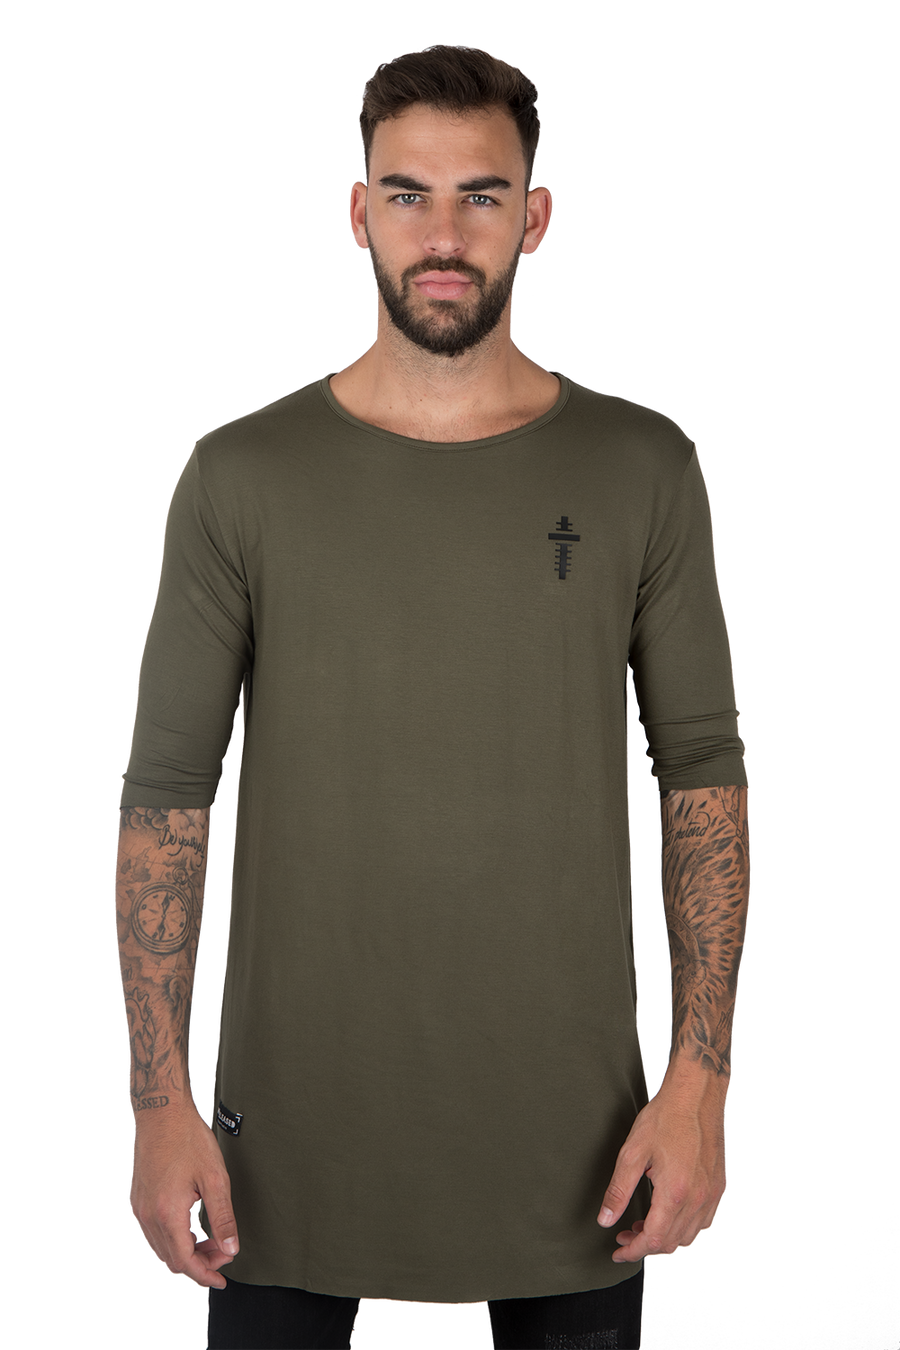 LONG FLOWING T-SHIRT - KHAKI